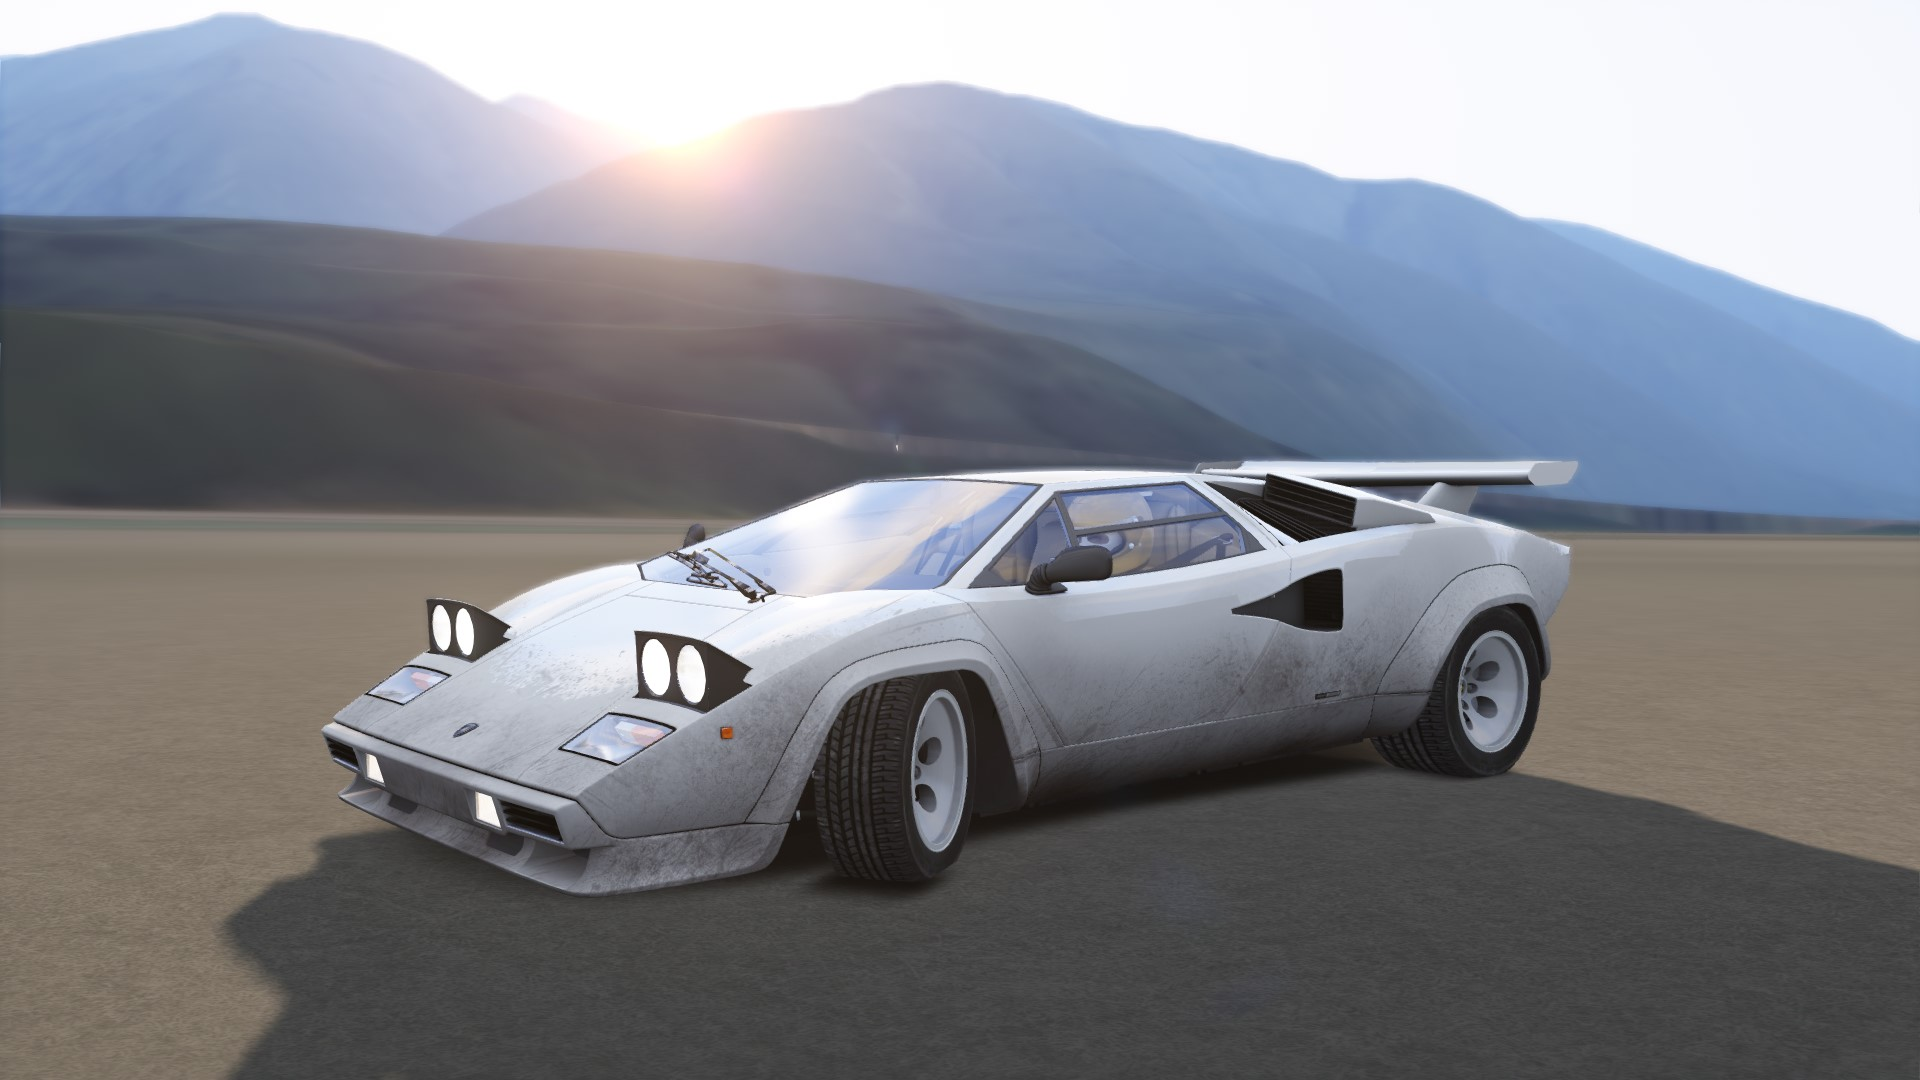 Screenshot_ks_lamborghini_countach_pacific_coast_13-10-116-12-47-51.jpg